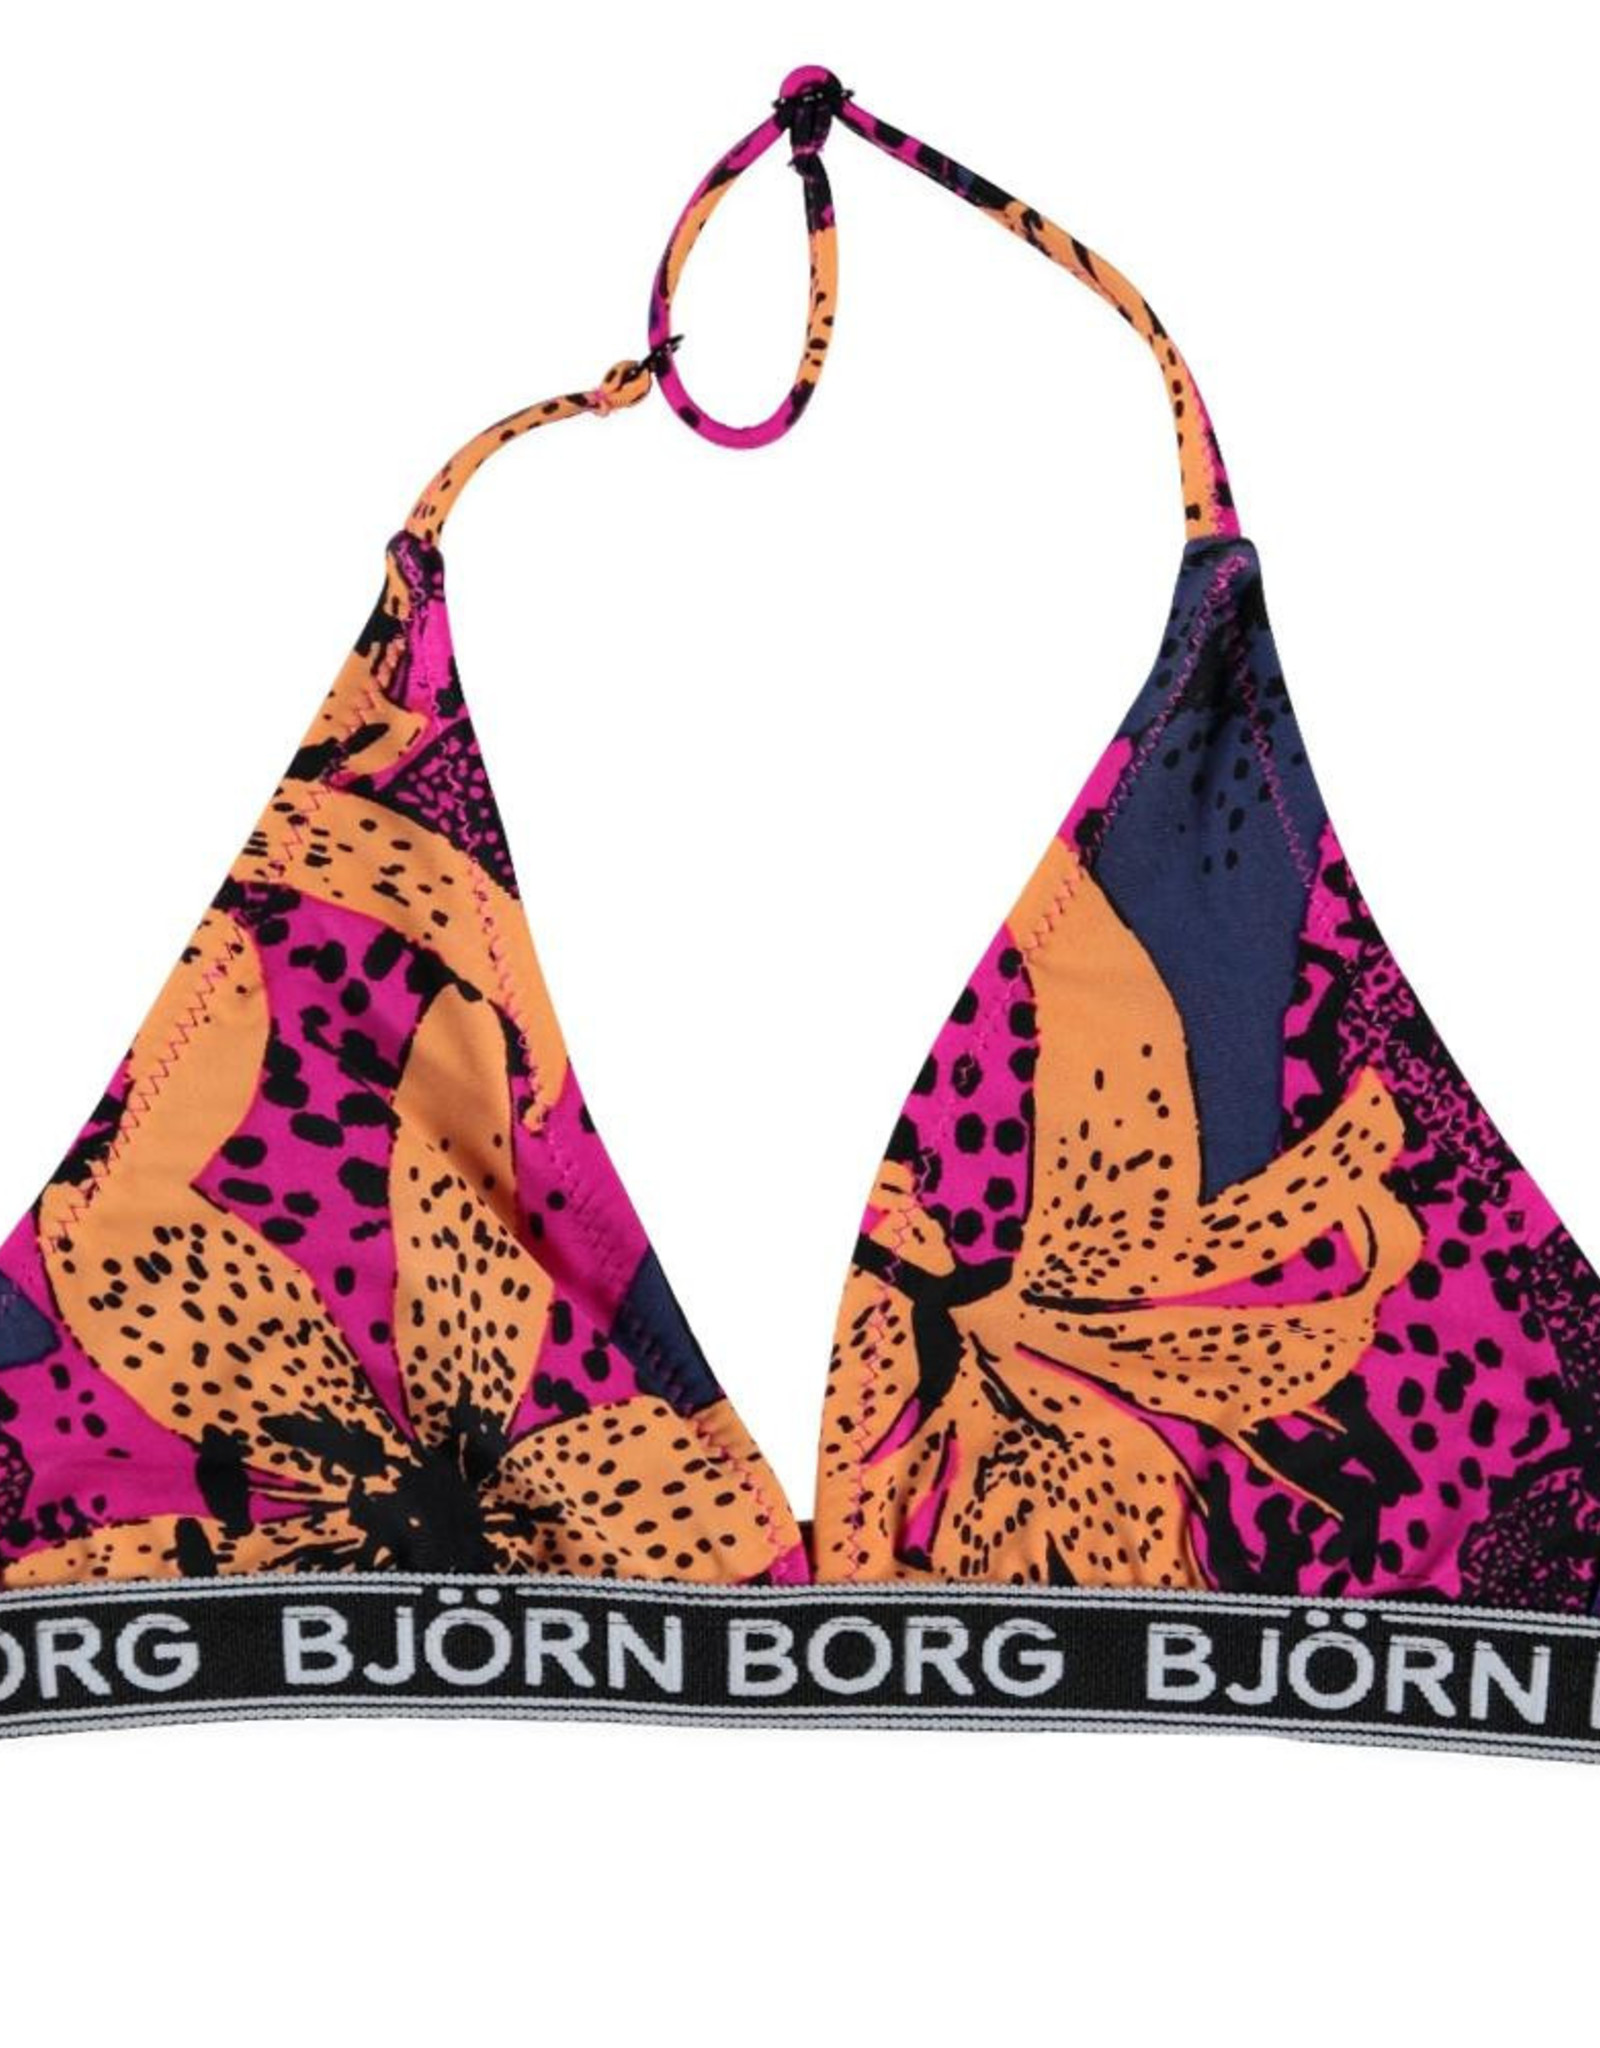 Bjorn Borg GIRLS TRIANGLE, BB Spotted Flowers